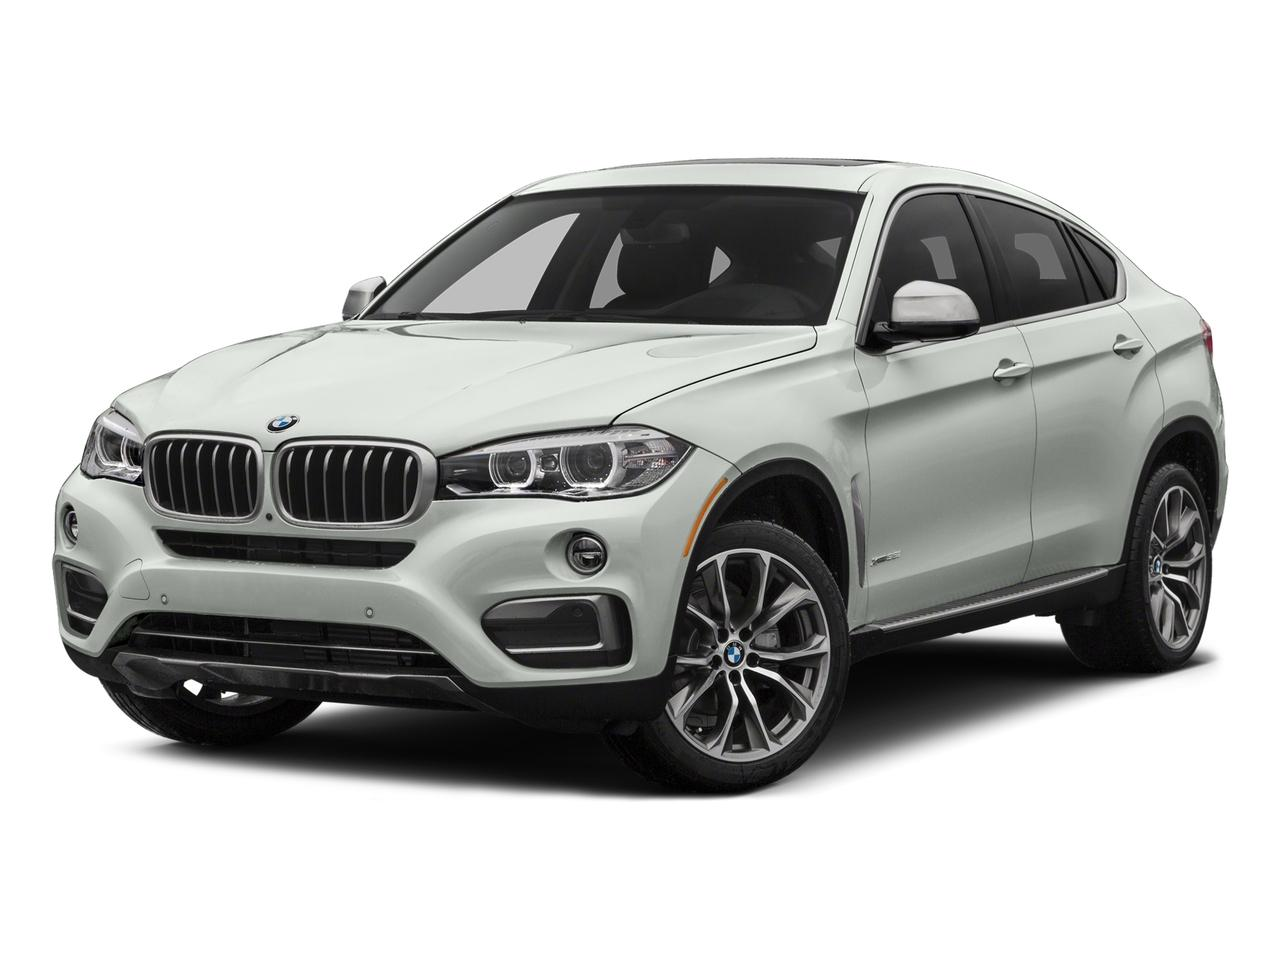 2015 BMW X6 xDrive35i Vehicle Photo in Portland, OR 97225